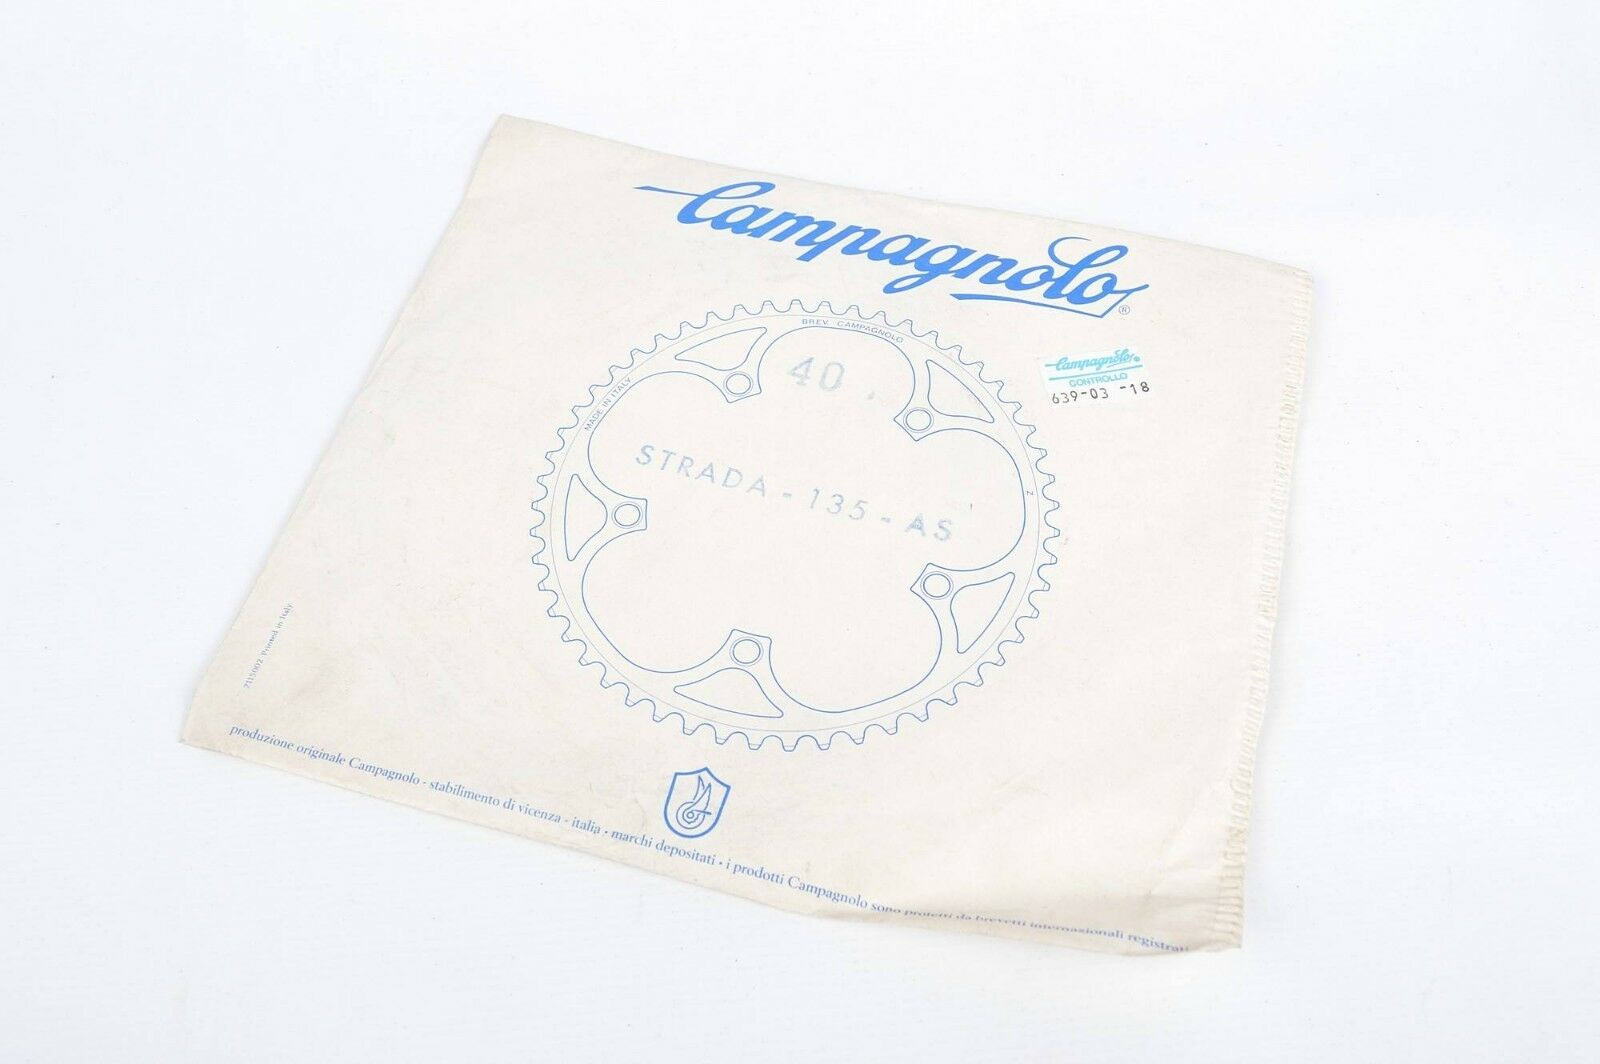 Vintage Campagnolo Bicycle Chainring 40T 135 BCD NOS Retro Road Bike Parts